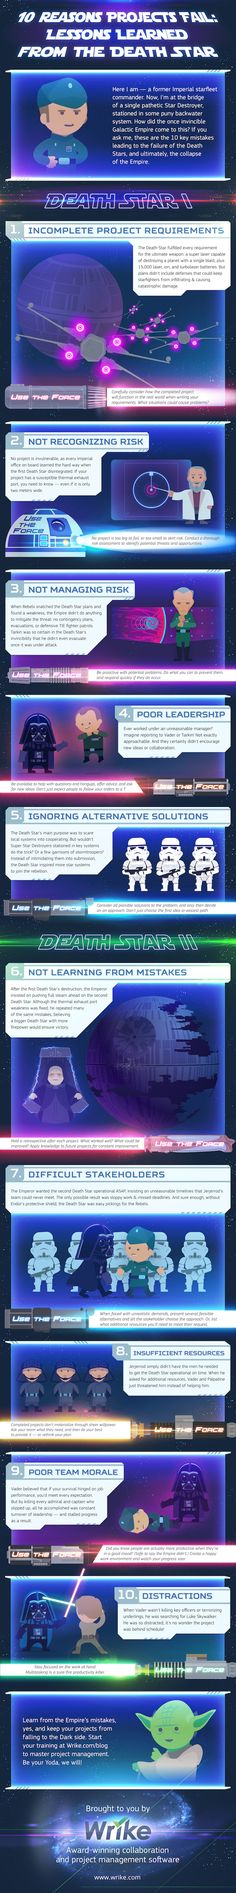 The Death Star project failed spectacularly. Learn from the Empire's mistakes and keep your projects from falling to the Dark Side!